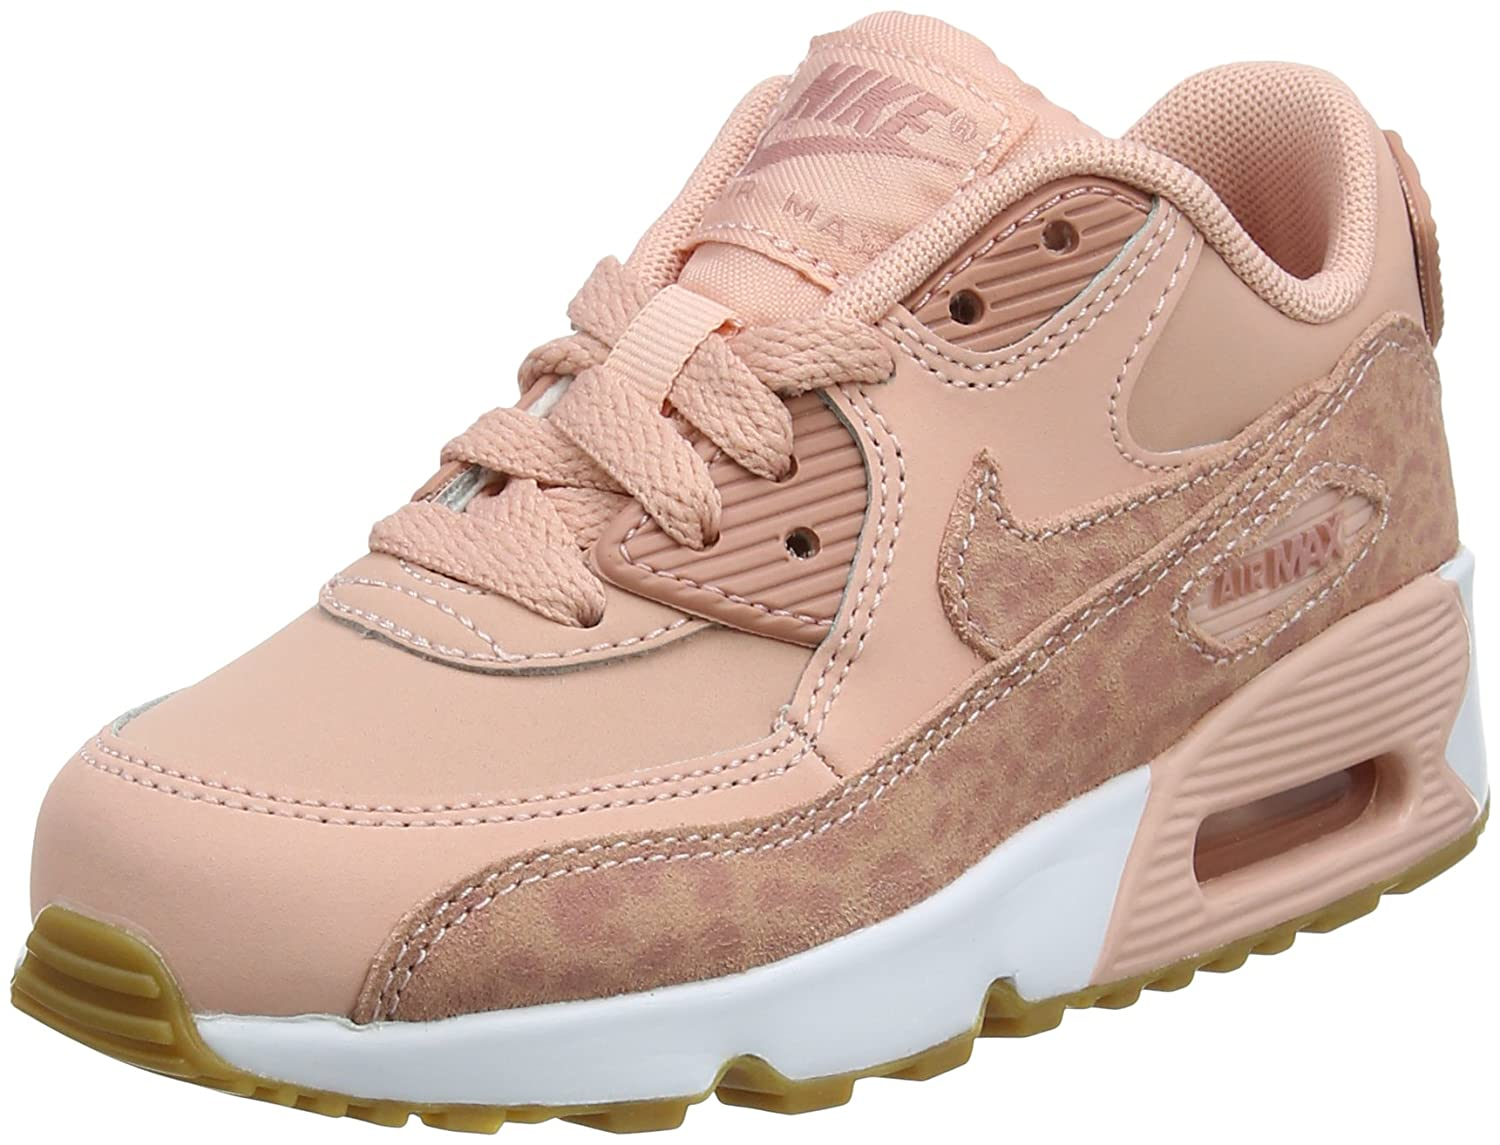 release date: a27f6 8cac0 Amazon.com | Nike Air Max 90 SE LTR Coral Stardust/Rust Pink ...